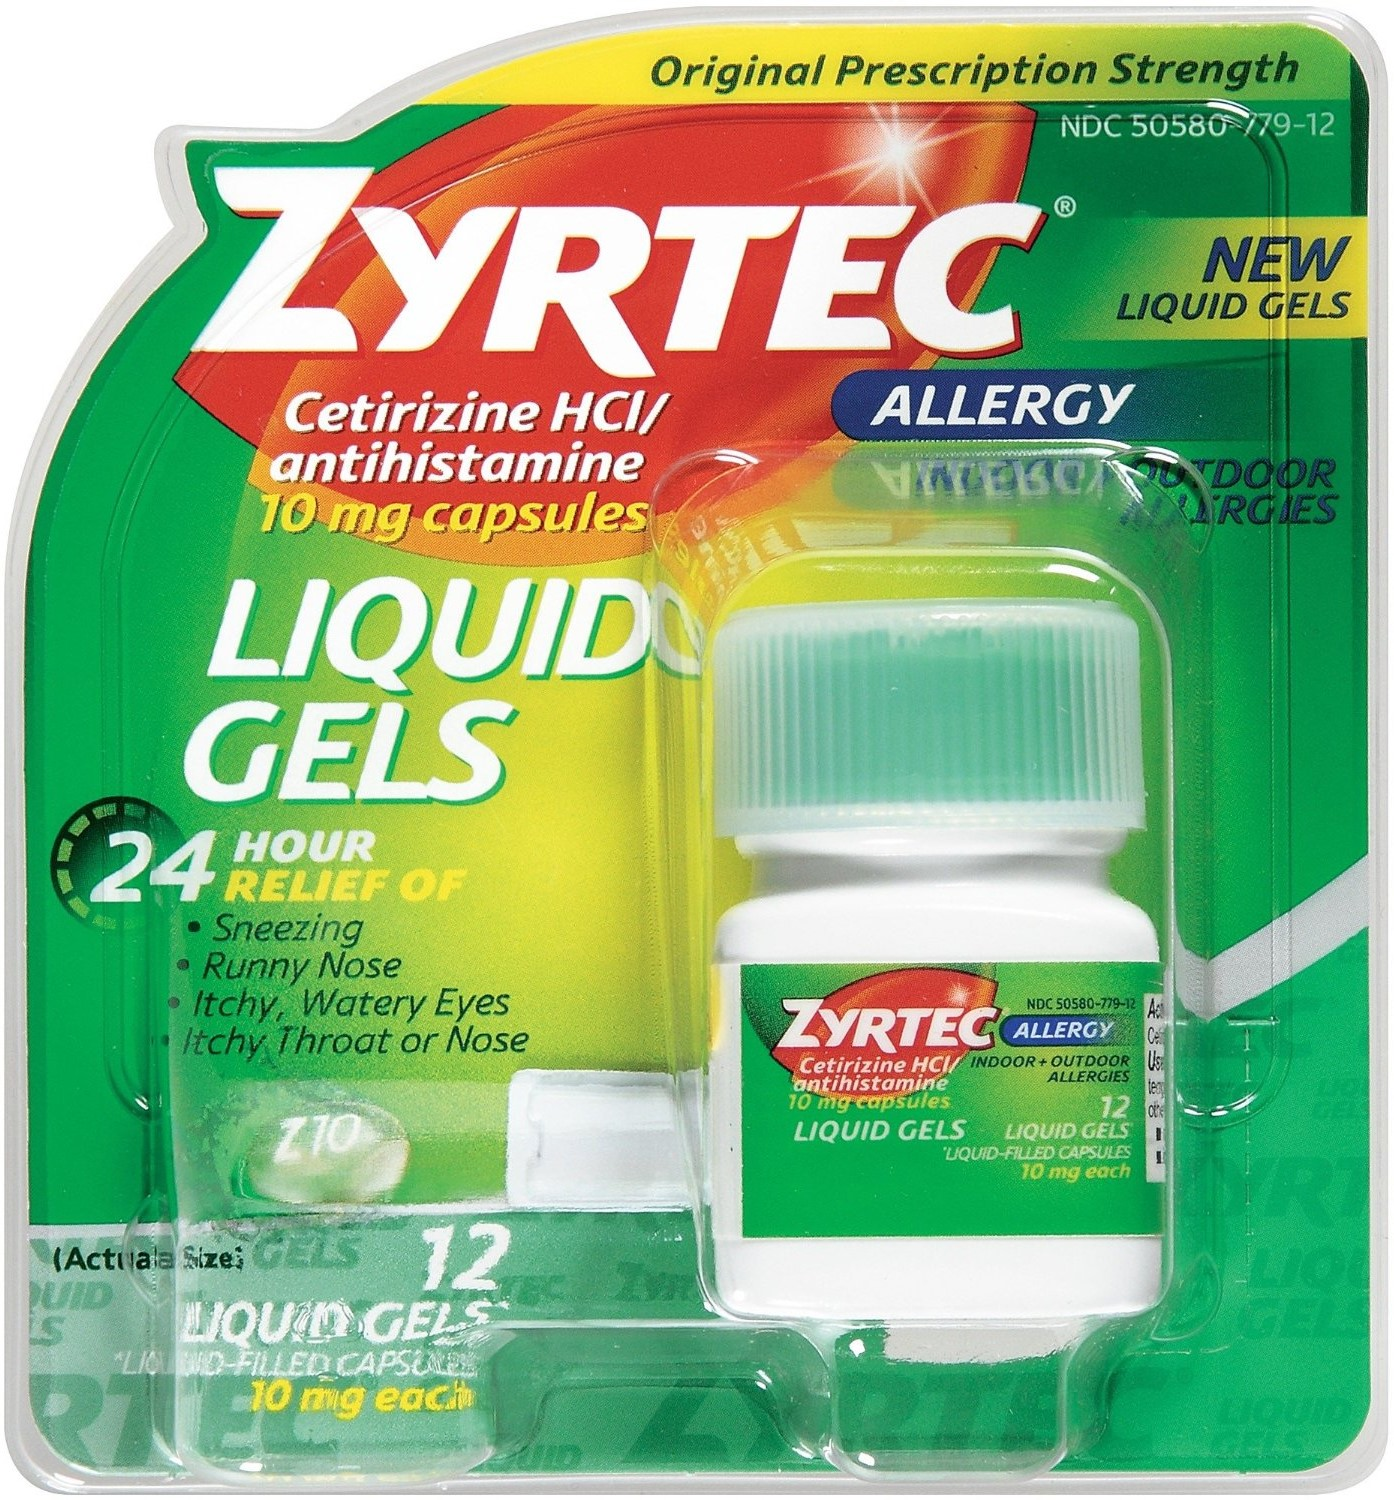 Zyrtec Allergy 10 mg Liquid Gels 12 ea (Pack of 6)